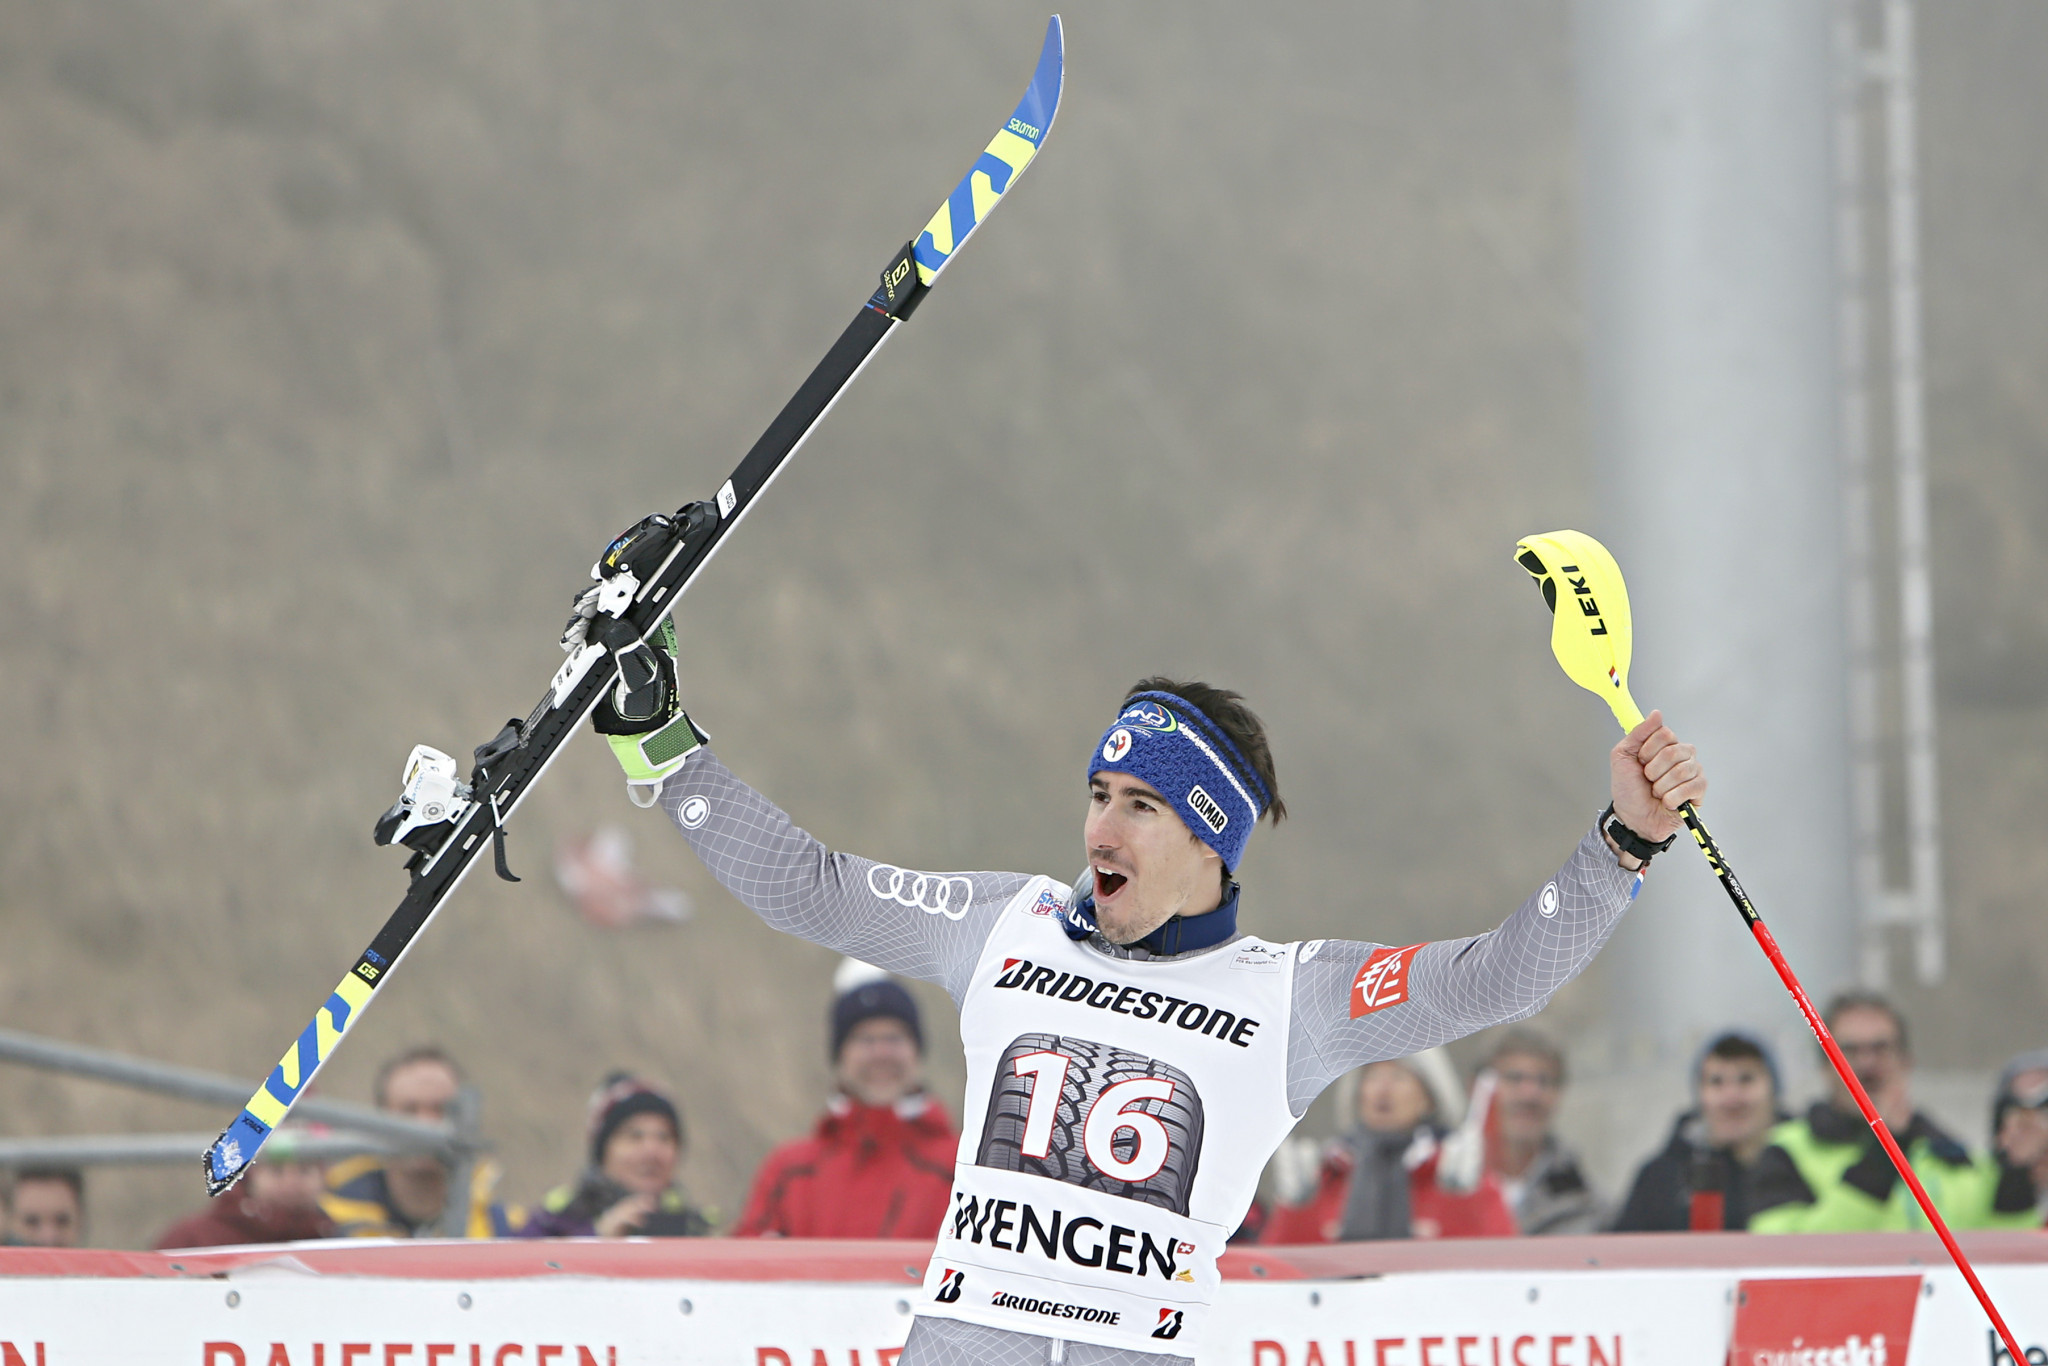 Victor Muffat-Jeandet won his first-ever World Cup title in the alpine combined event in Switzerland ©Getty Images